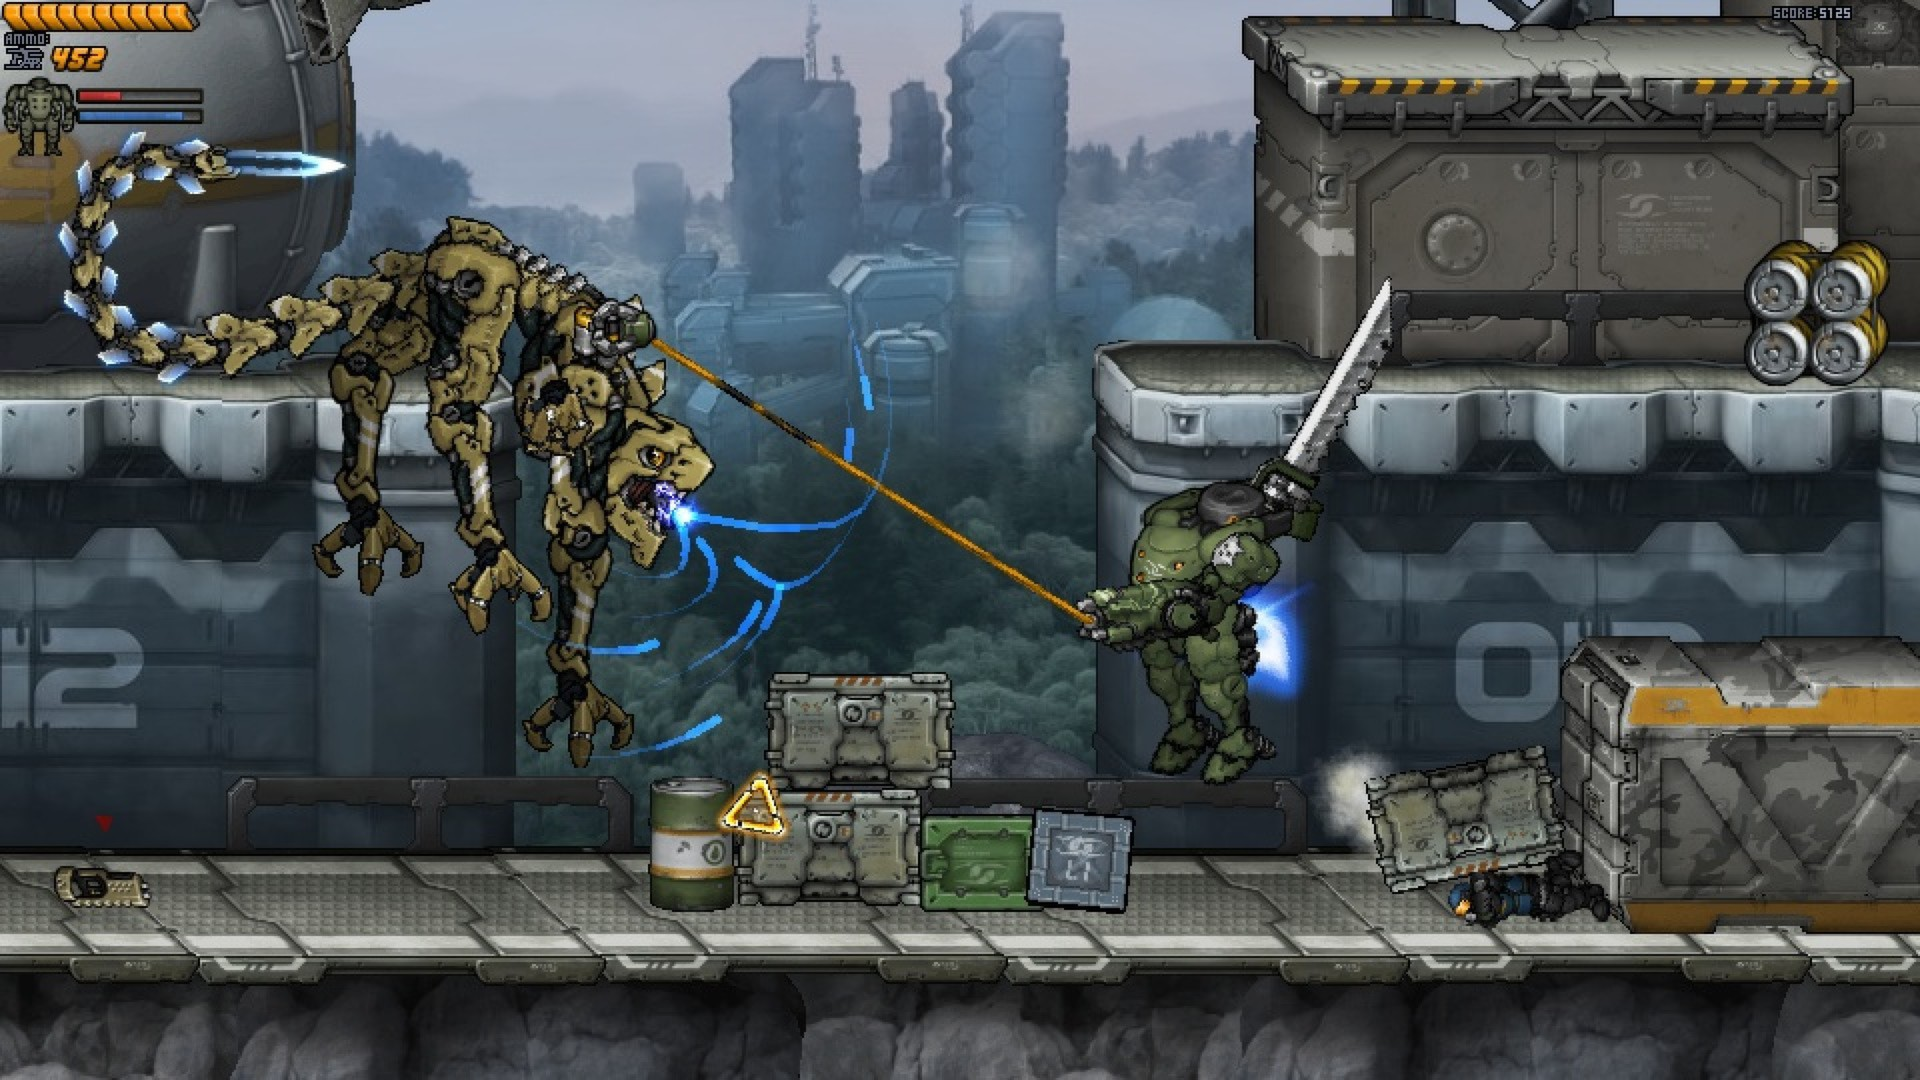 download intrusion 2 full pc game